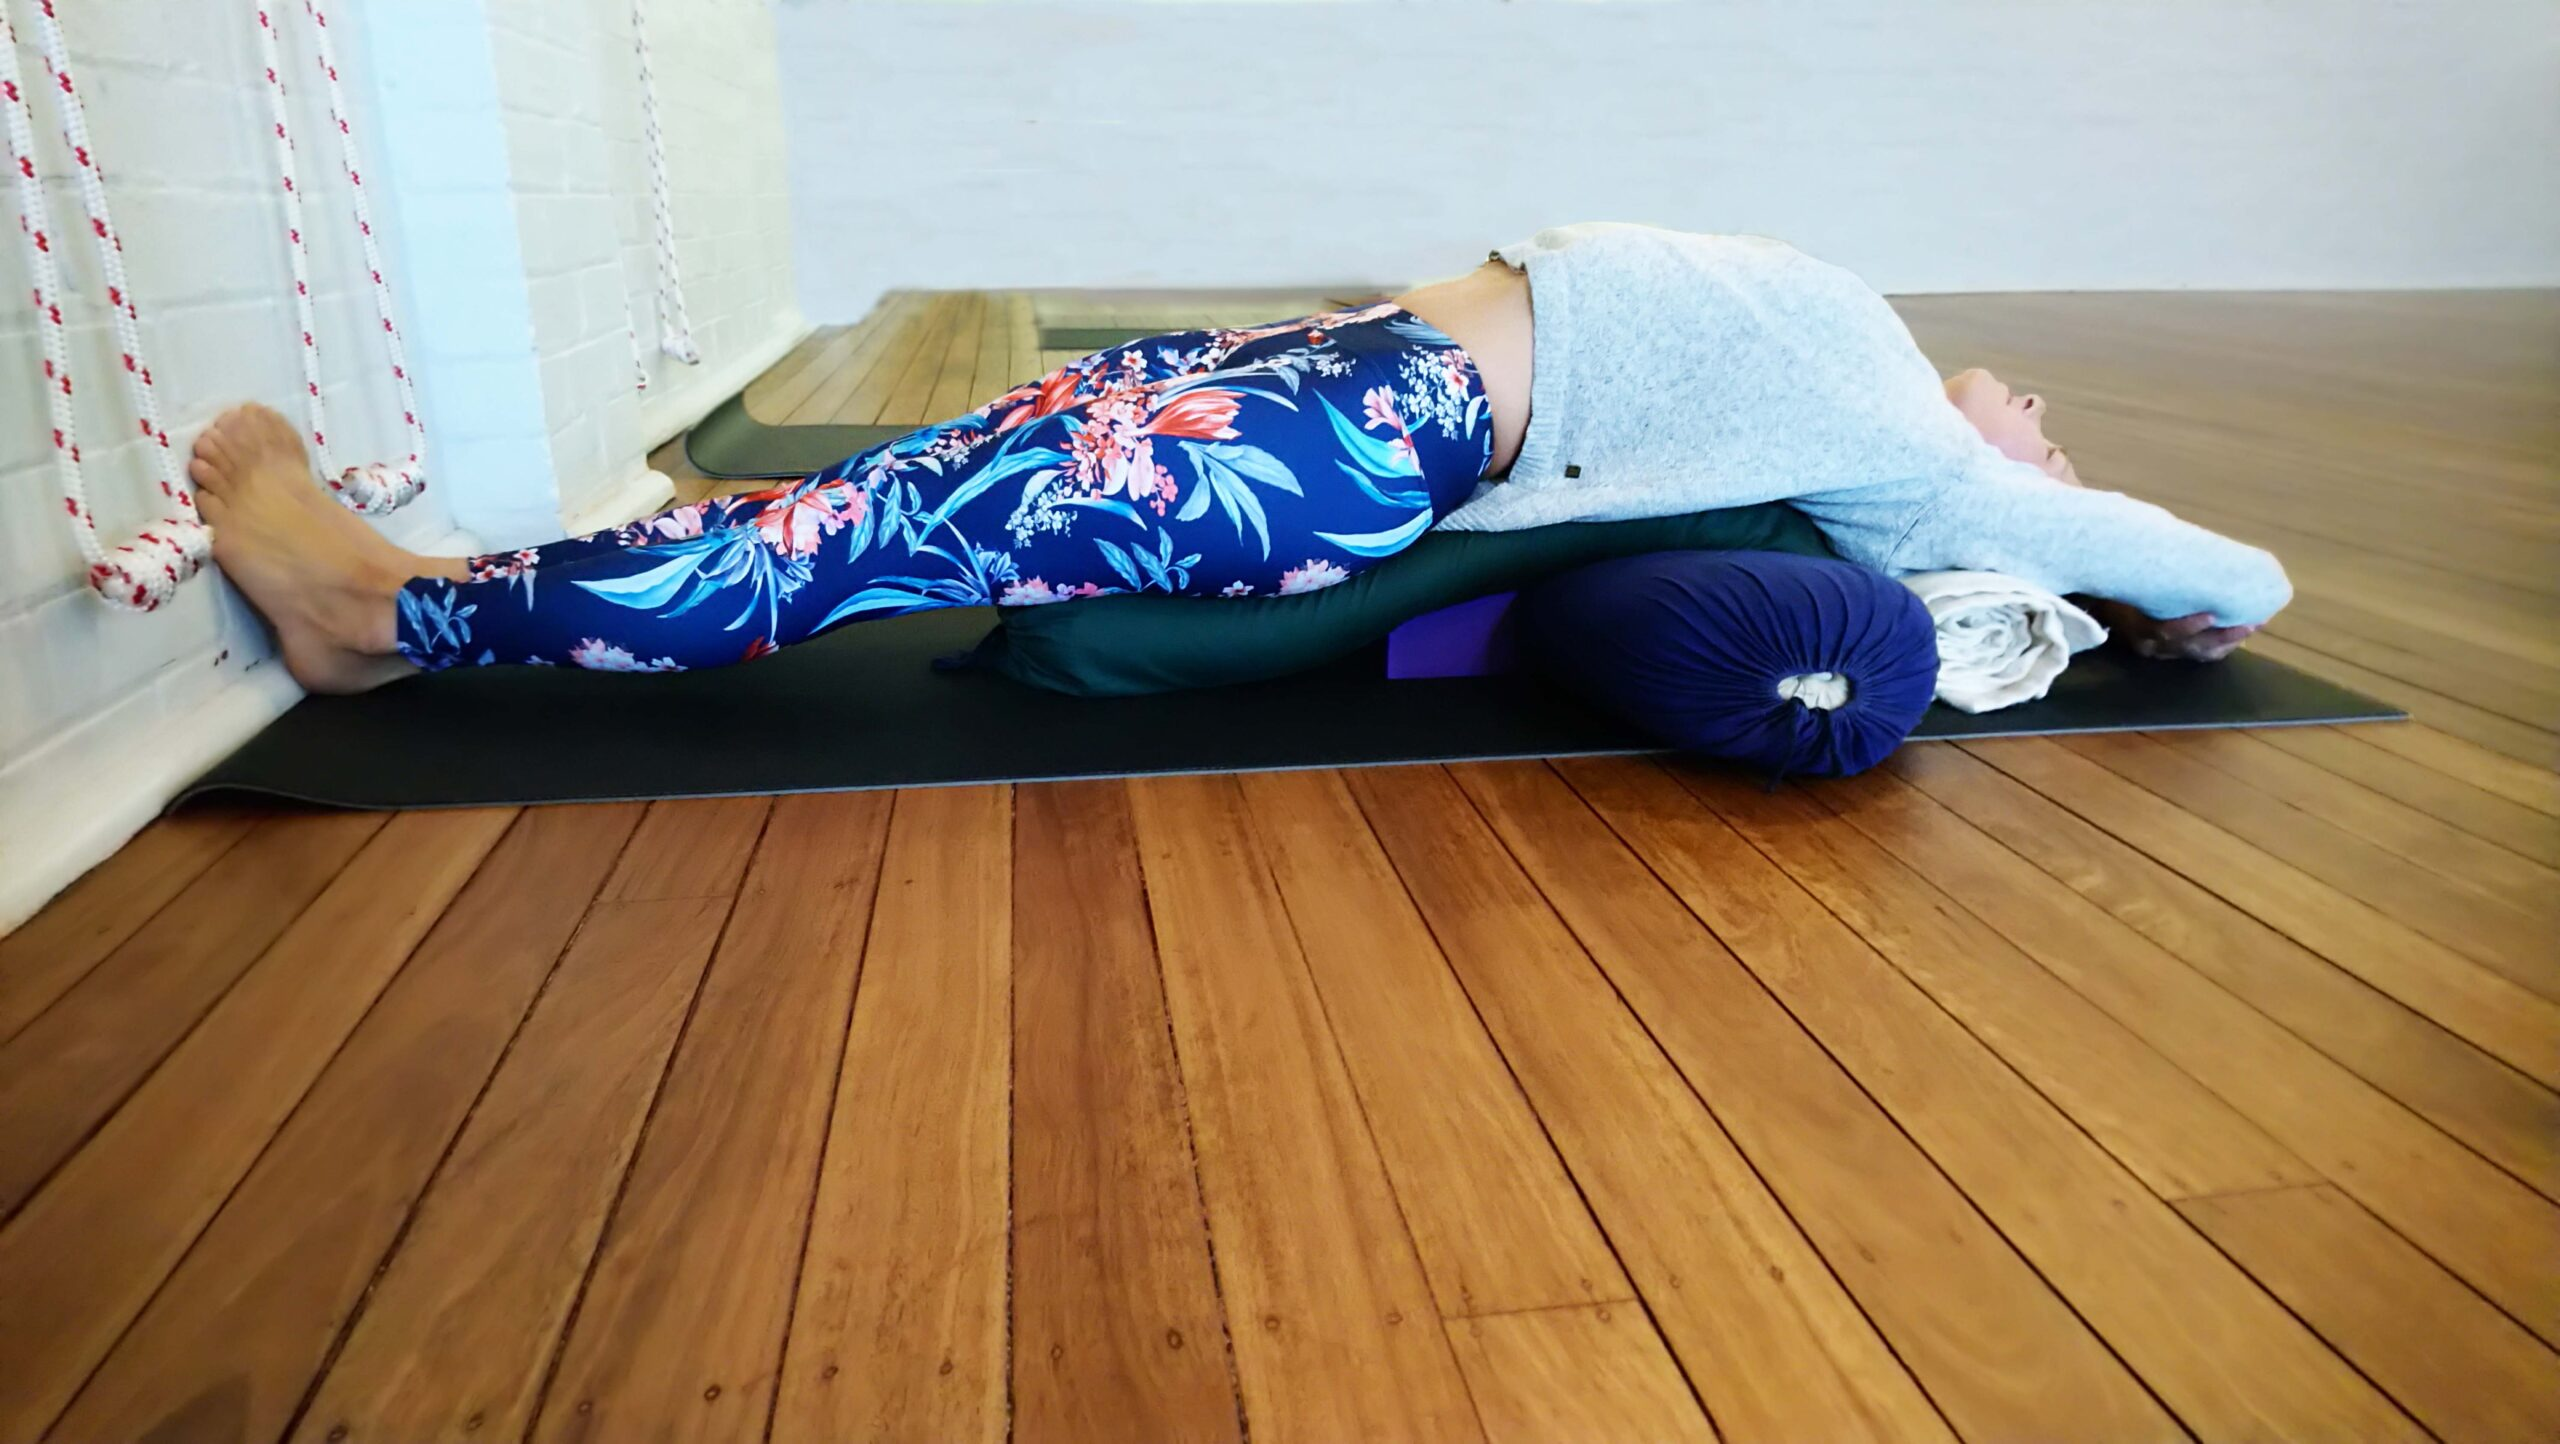 A student in a restorative yoga pose at Hamilton Yoga in Newcastle New South Wales